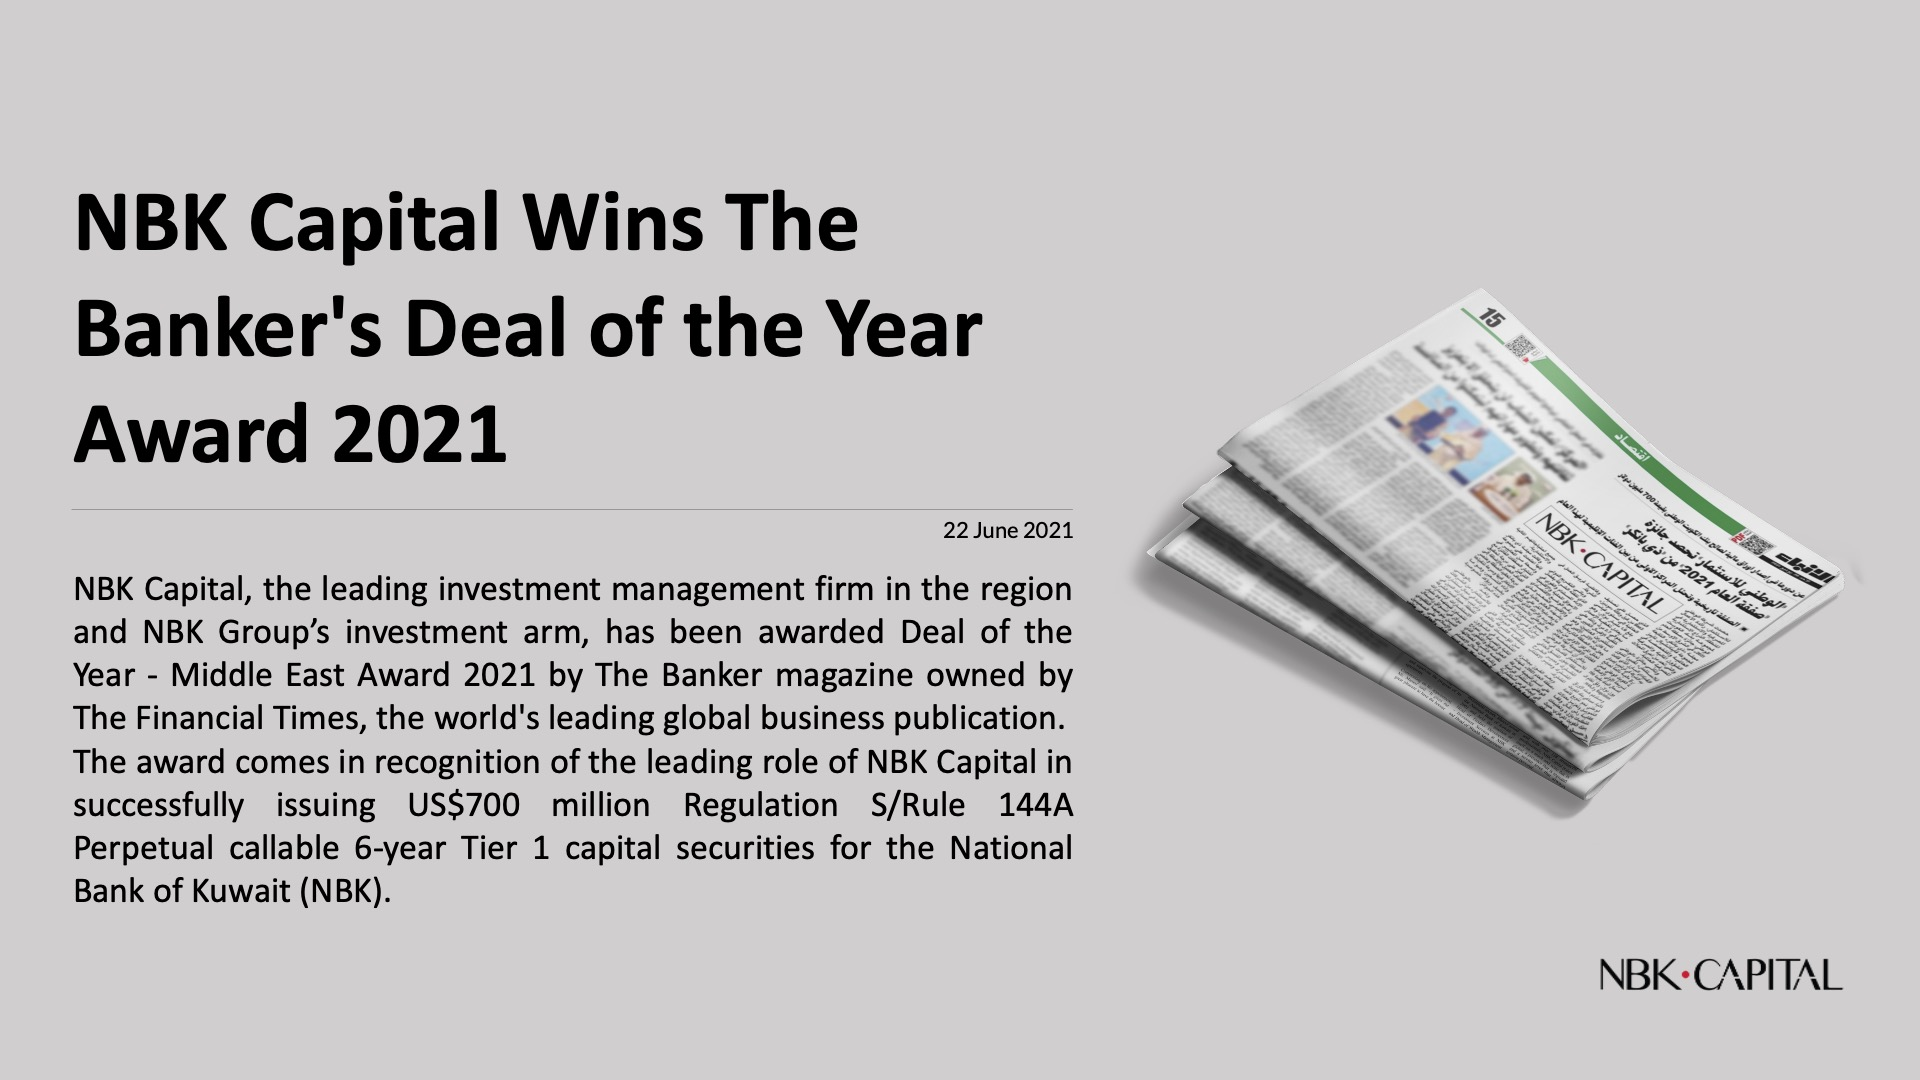 NBK Capital Wins The Banker's Deal of the Year Award 2021